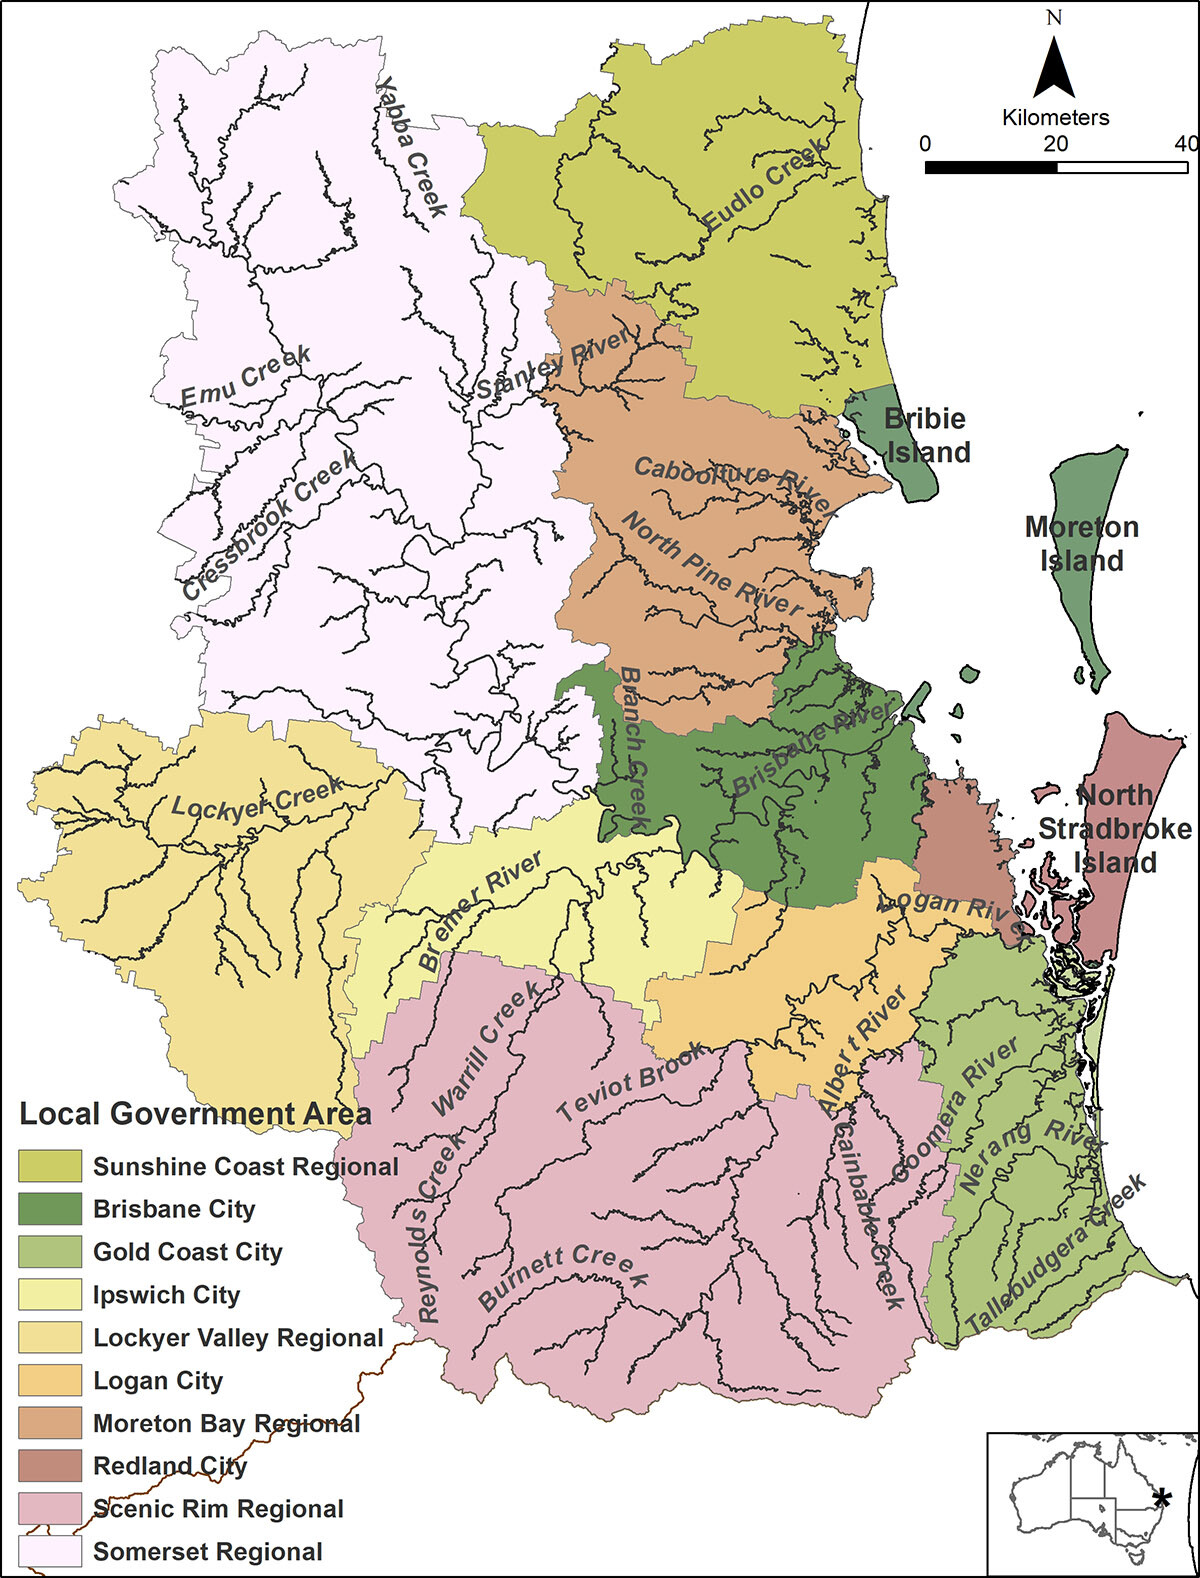 Moreton Bay catchment area with Local Government Areas